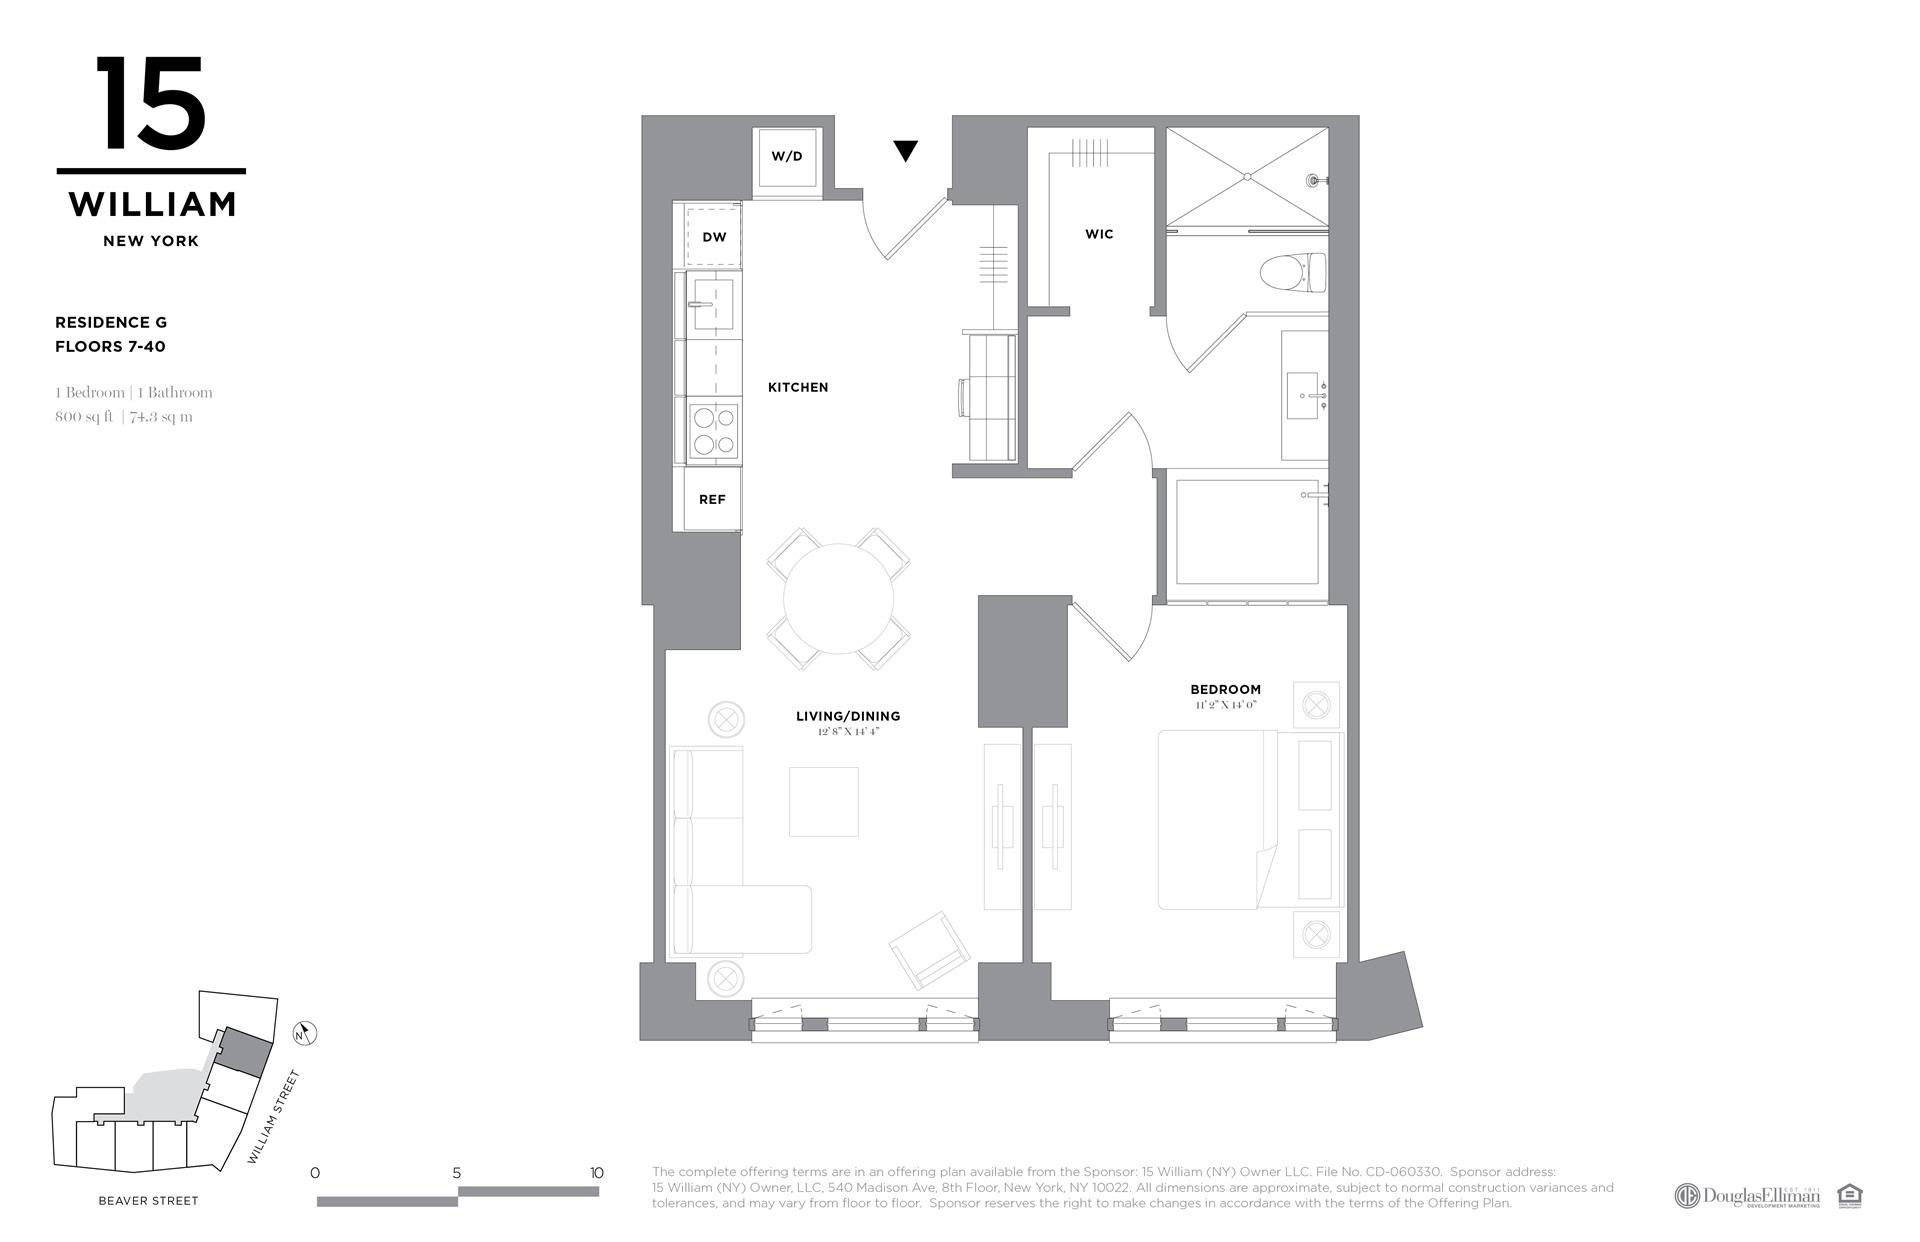 Floor plan of 15 William, 15 William St, 38G - Financial District, New York